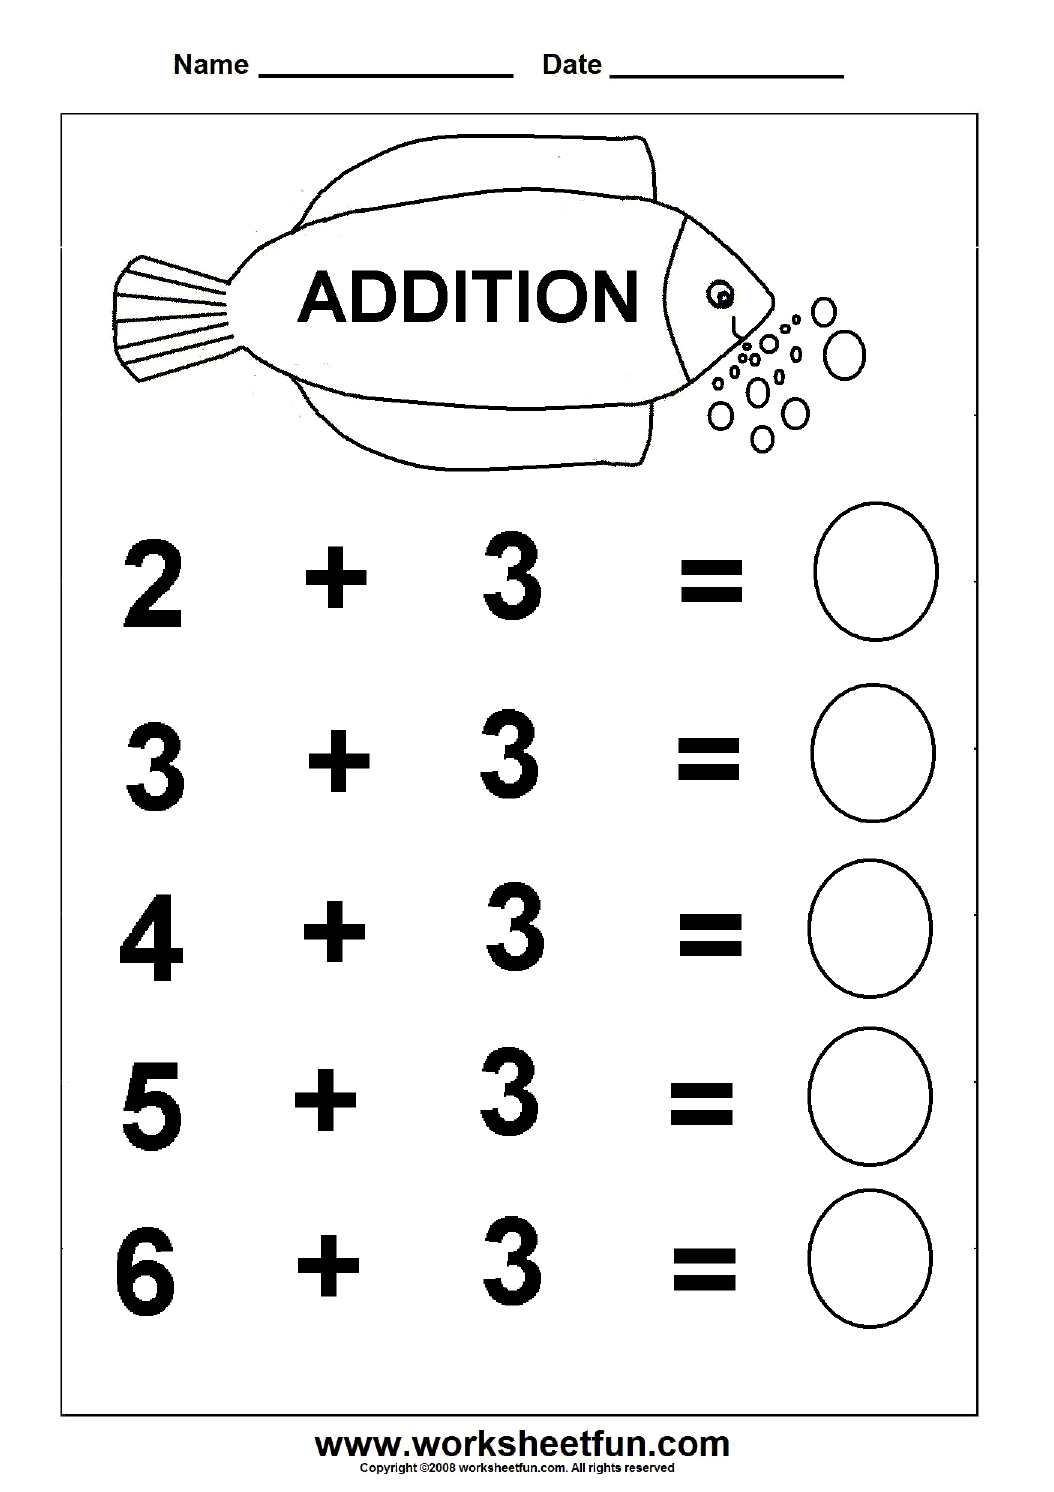 Addition Worksheets Using A The Best Worksheets Image Collection